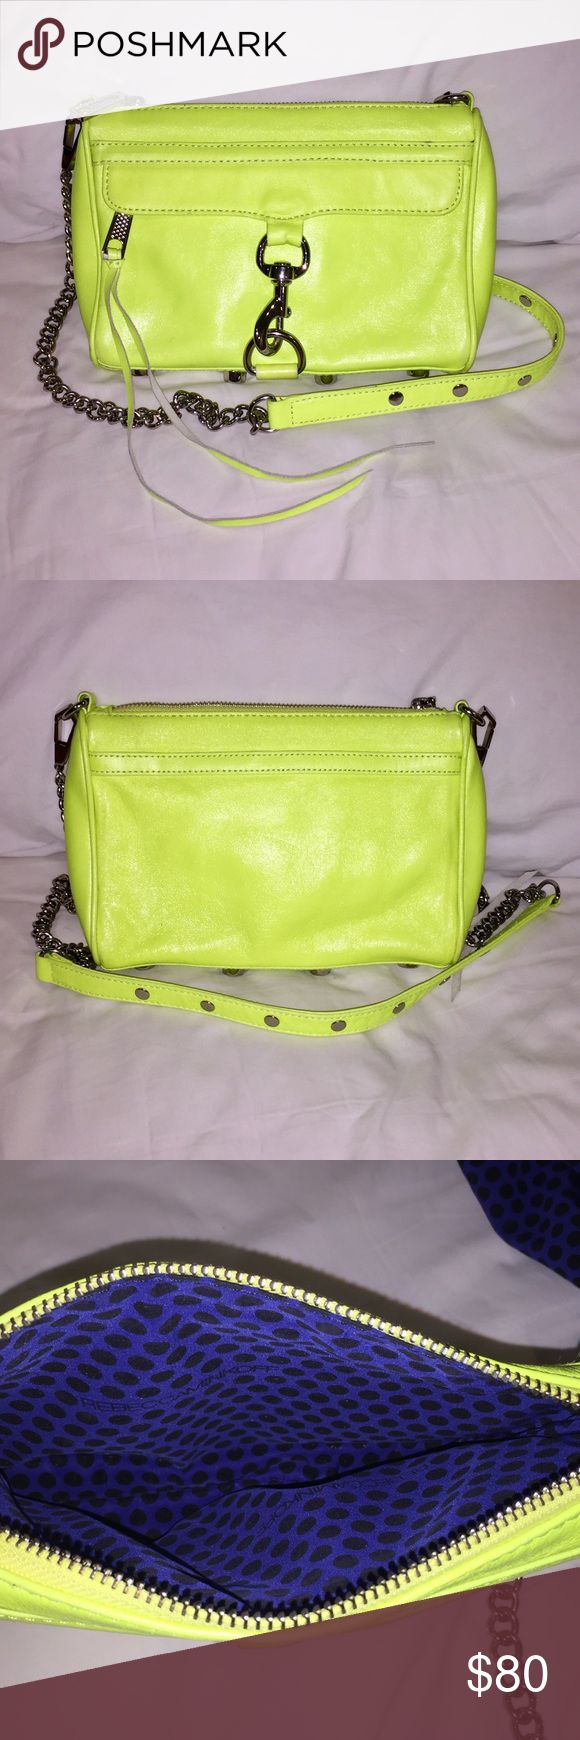 """Rebecca Minkoff Neon Yellow Mini M.A.C. Crossbody A petite take on Rebecca's classic M.A.C. clutch, this handbag is much roomier than it looks. It's big enough to fit your phone, keys, wallet and makeup essentials, but sleek enough so that it won't weigh you down. Wear it on your shoulder or crossbody with the adjustable chain strap. Bright cheerful neon yellow leather with silver chain and hardware. Barely used: in excellent condition with original dust bag and cards.9""""W x 1.5""""D x 6.5""""H…"""